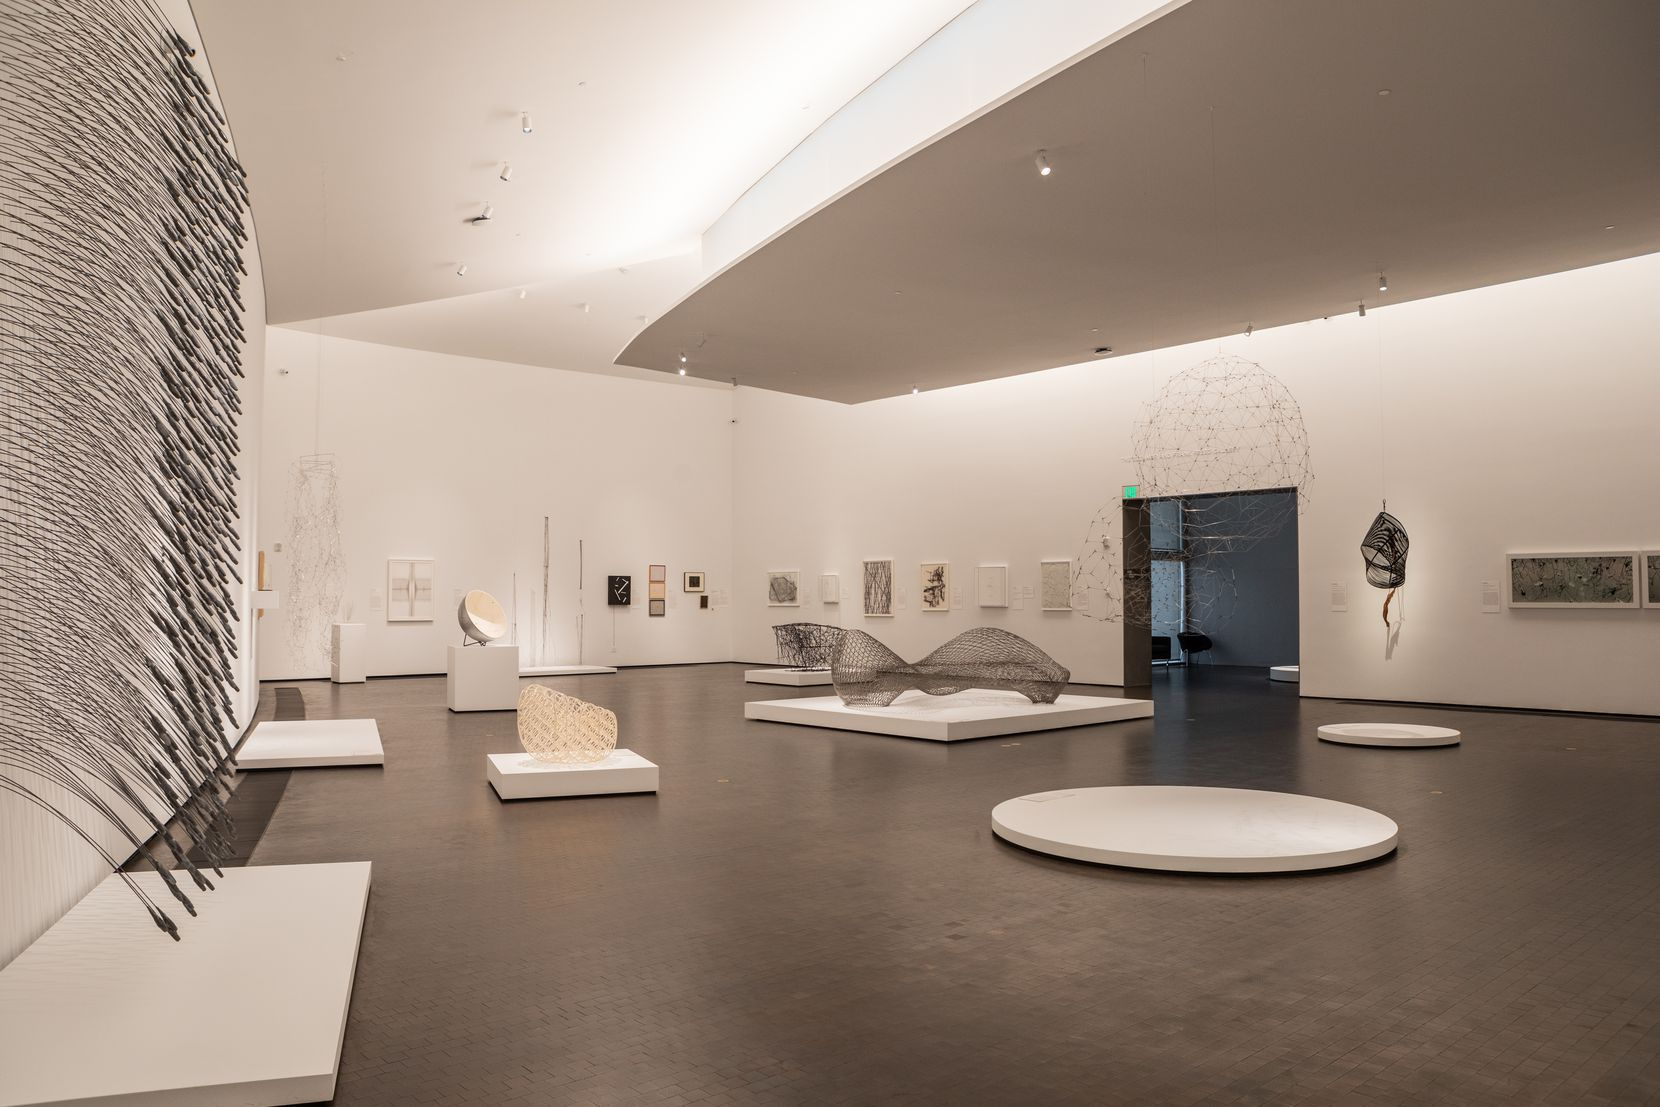 Within the galleries, light is controlled from above, pricking out of flanges in the ceiling.